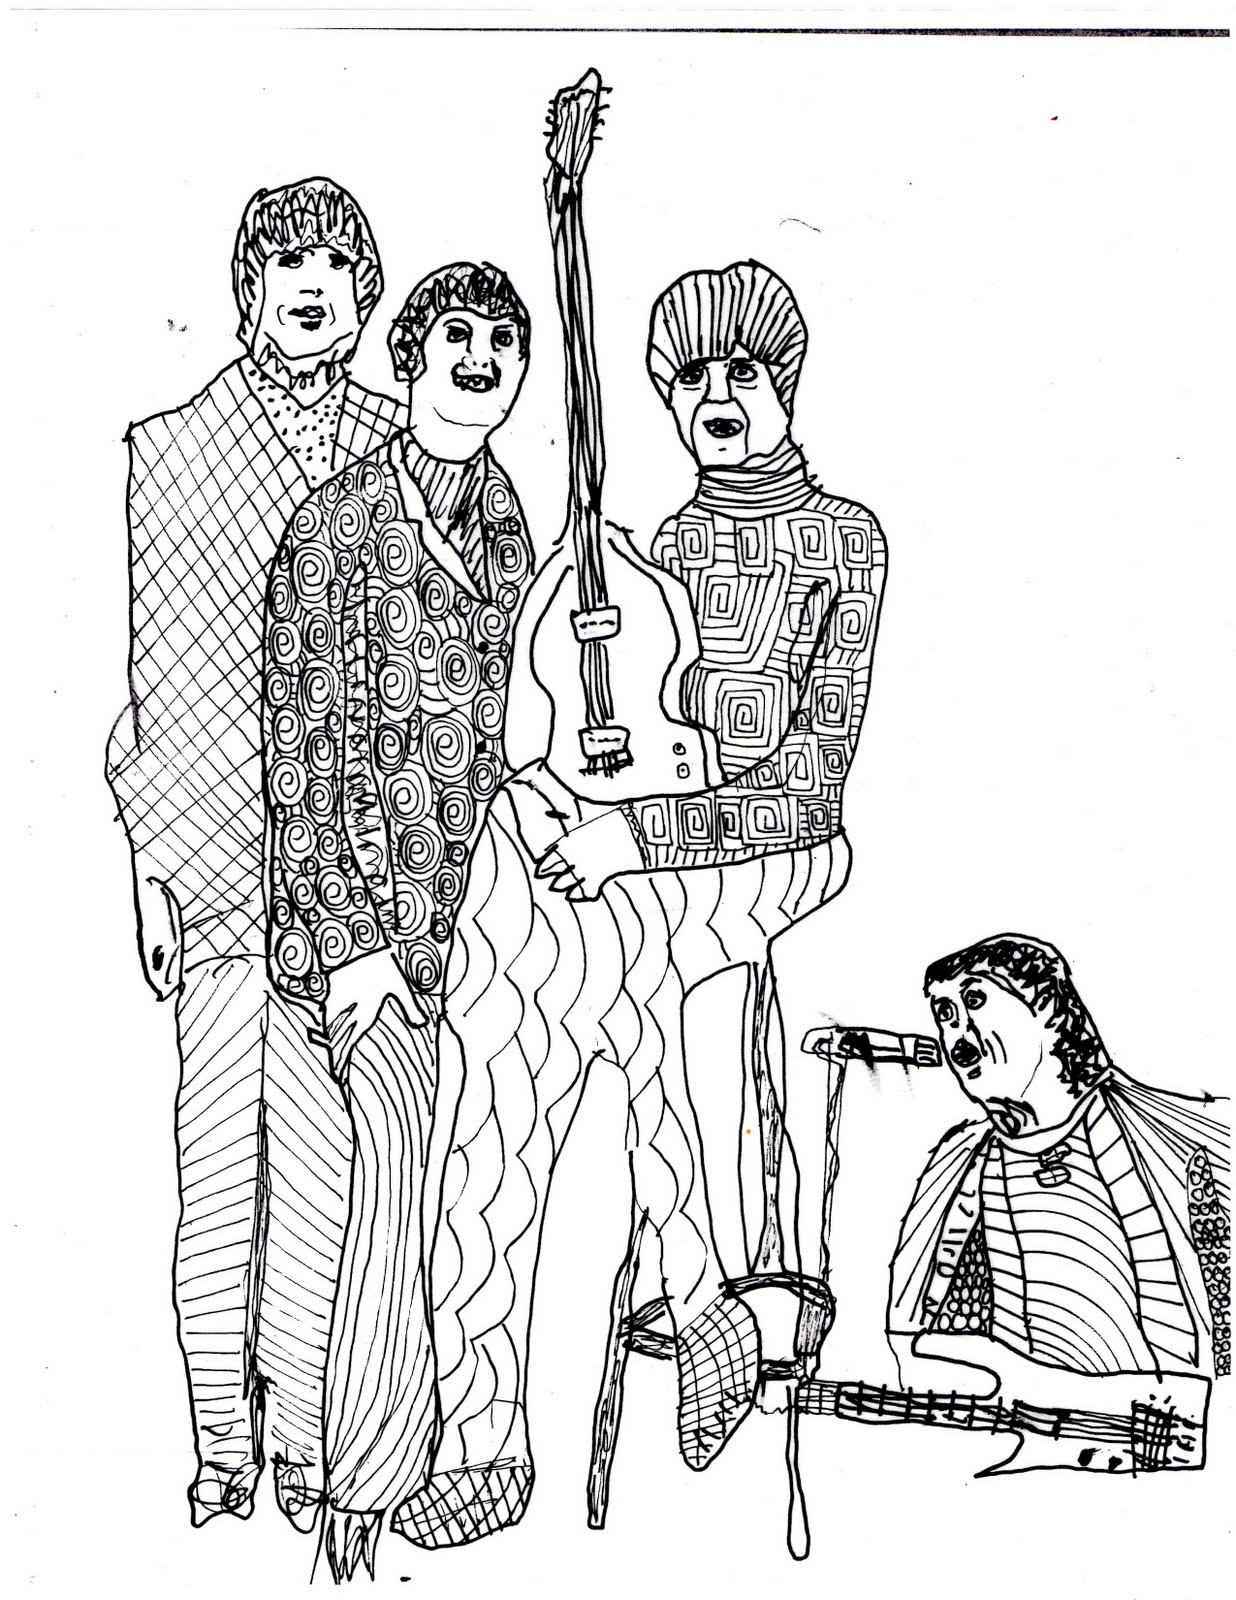 Gunk tv records bealtes coloring book 2nd edition for Beatles coloring book pages